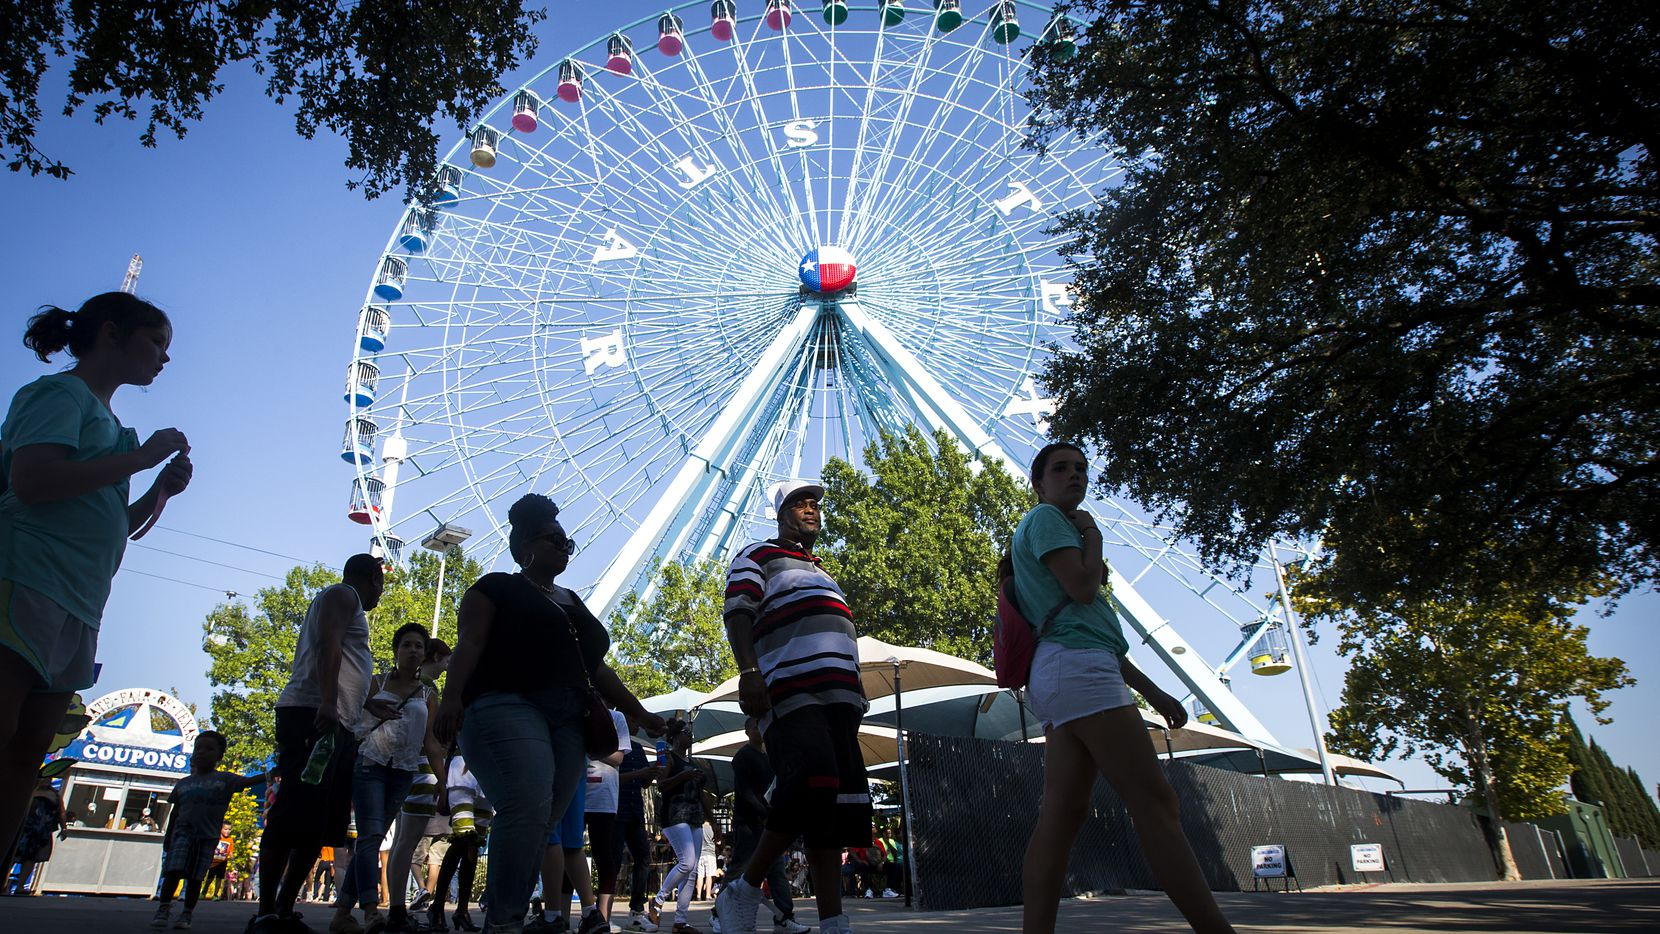 In 2020, fairgoers can drive through the State Fair of Texas and buy Fletcher's corny dogs, Jack's French Fries, Stiffler's Fried Oreos and other famous items. Interested attendees have to reserve a spot and pay in advance.